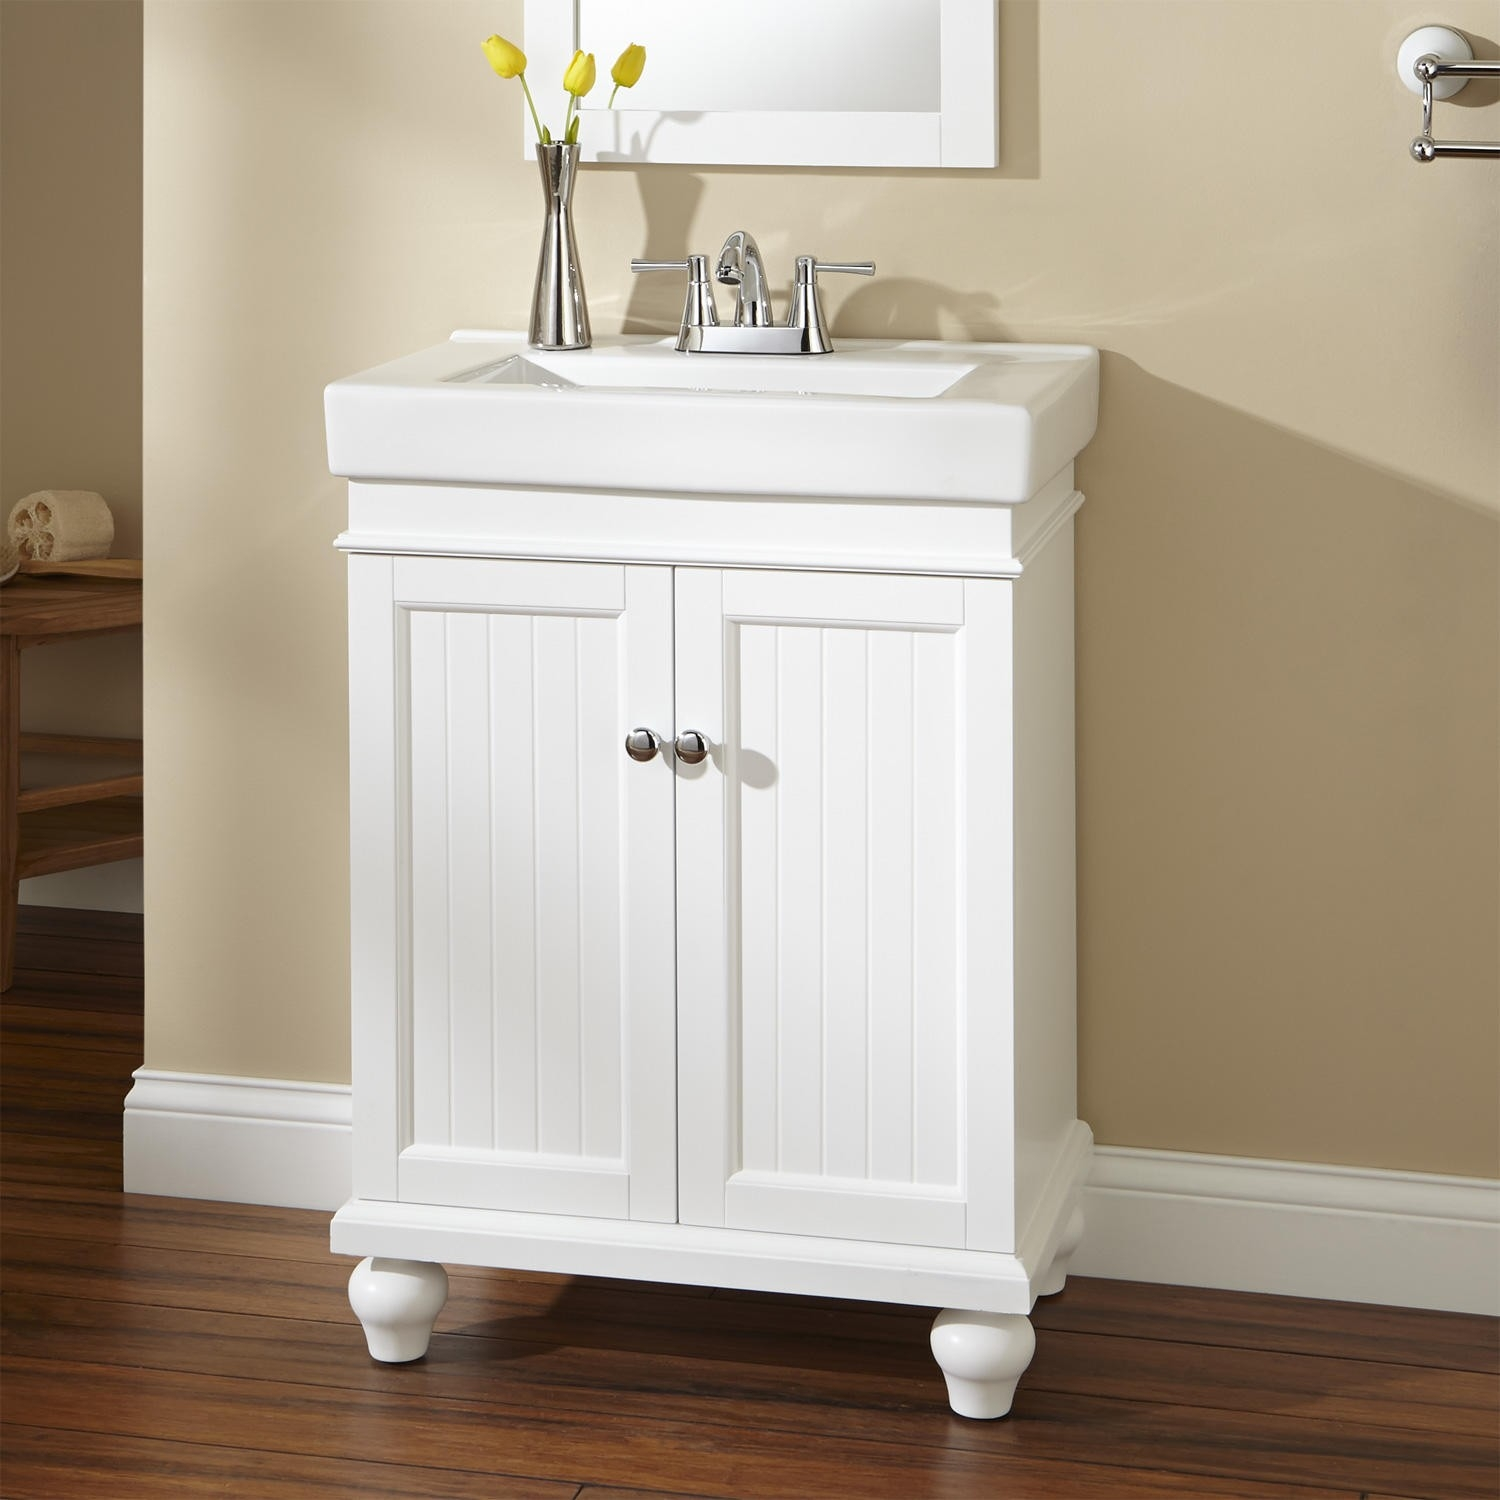 Hardware For White Bathroom Cabinets